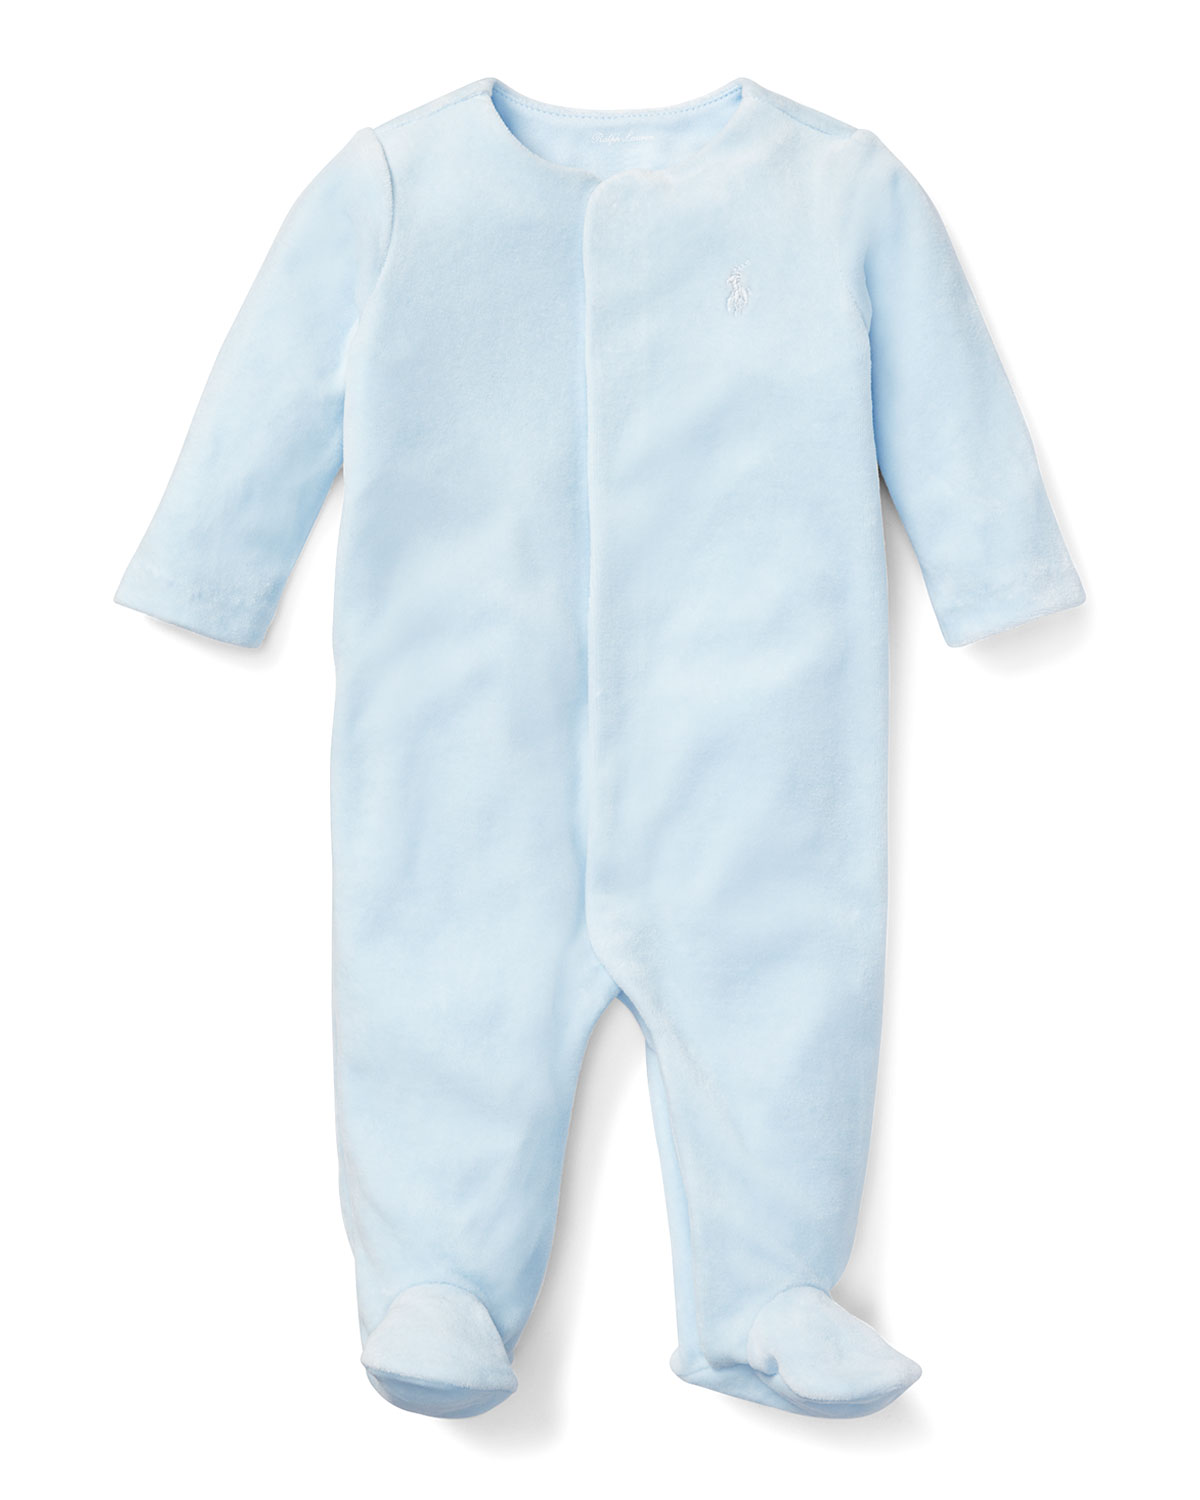 Solid Footie Pajamas, Size 3-9 Months